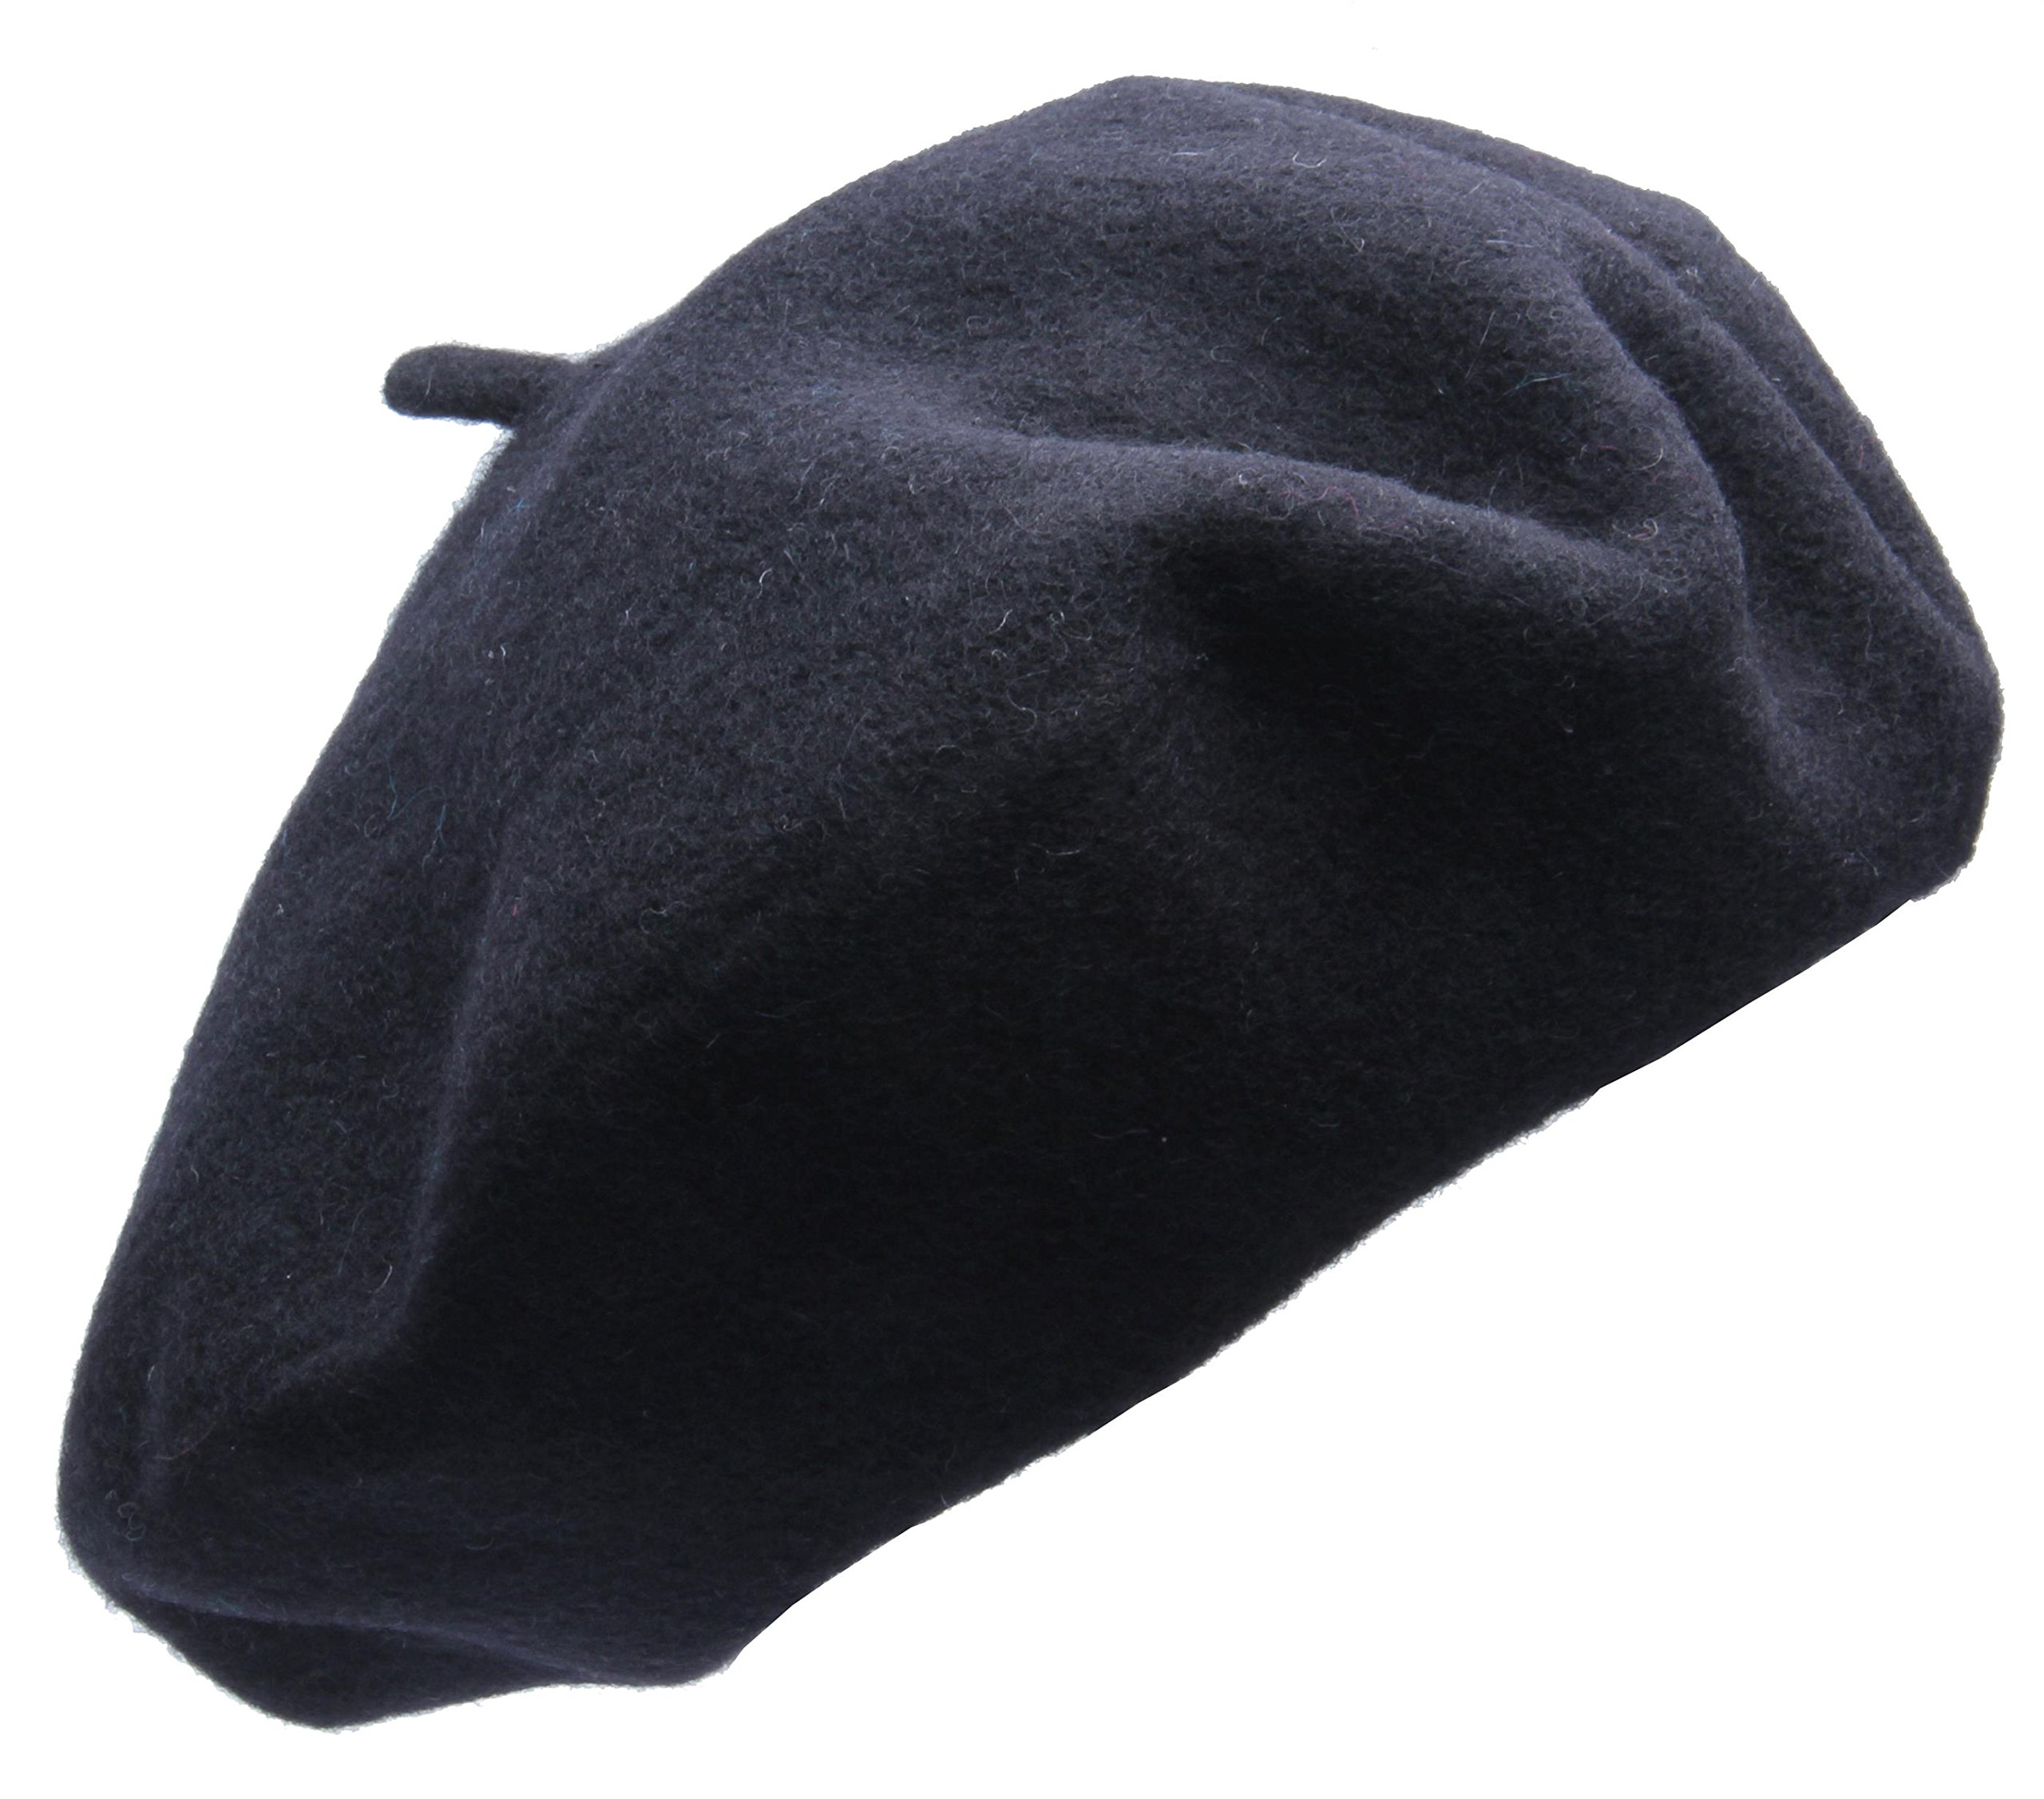 Beret hat Classic Solid Color 100% Wool soft warm Beret Beanie Hat Winter Autumn Fashion Caps (Black)